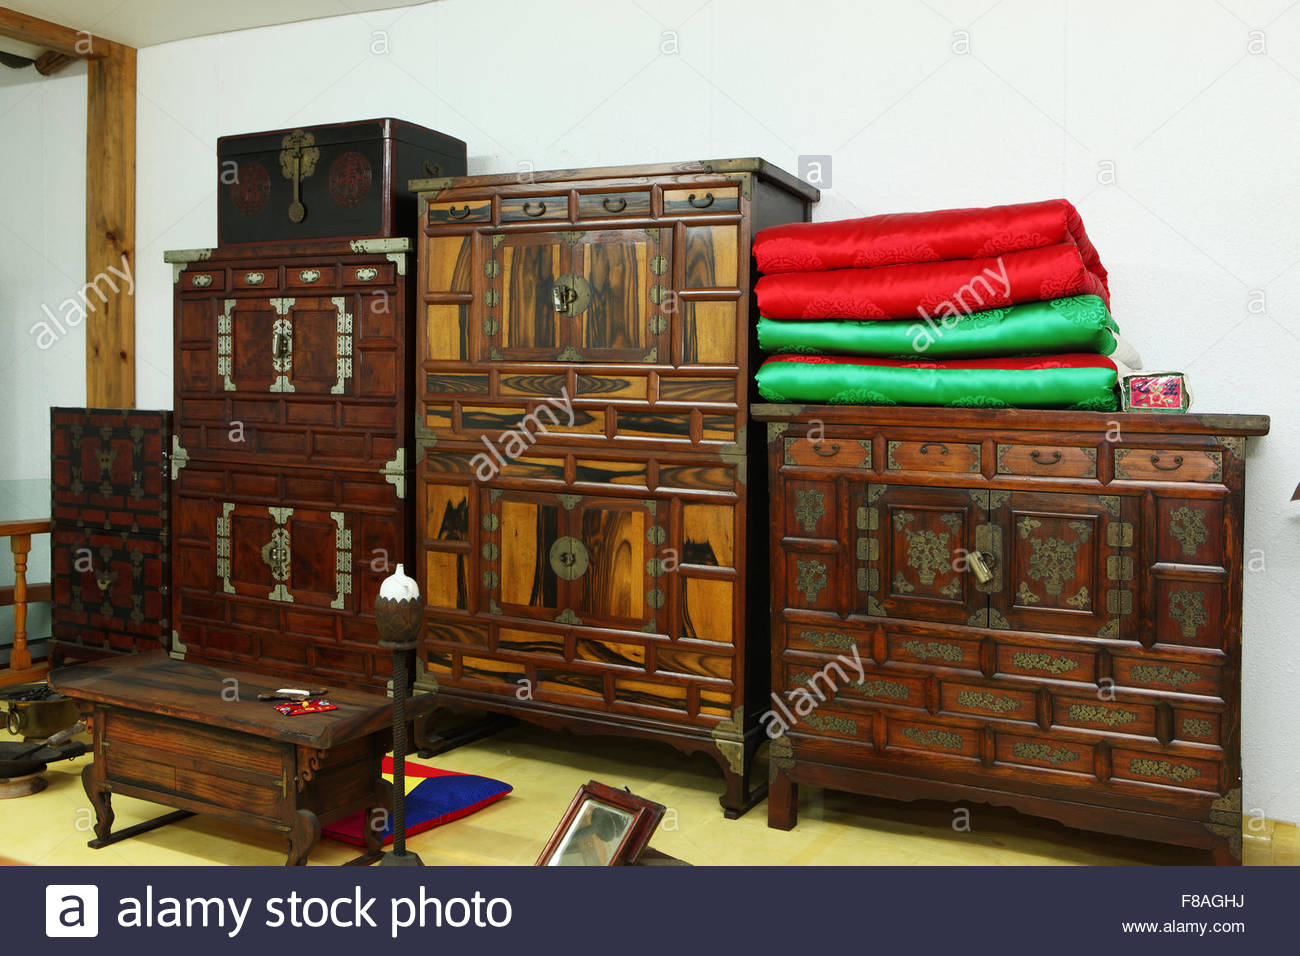 antique furniture - Stock Image